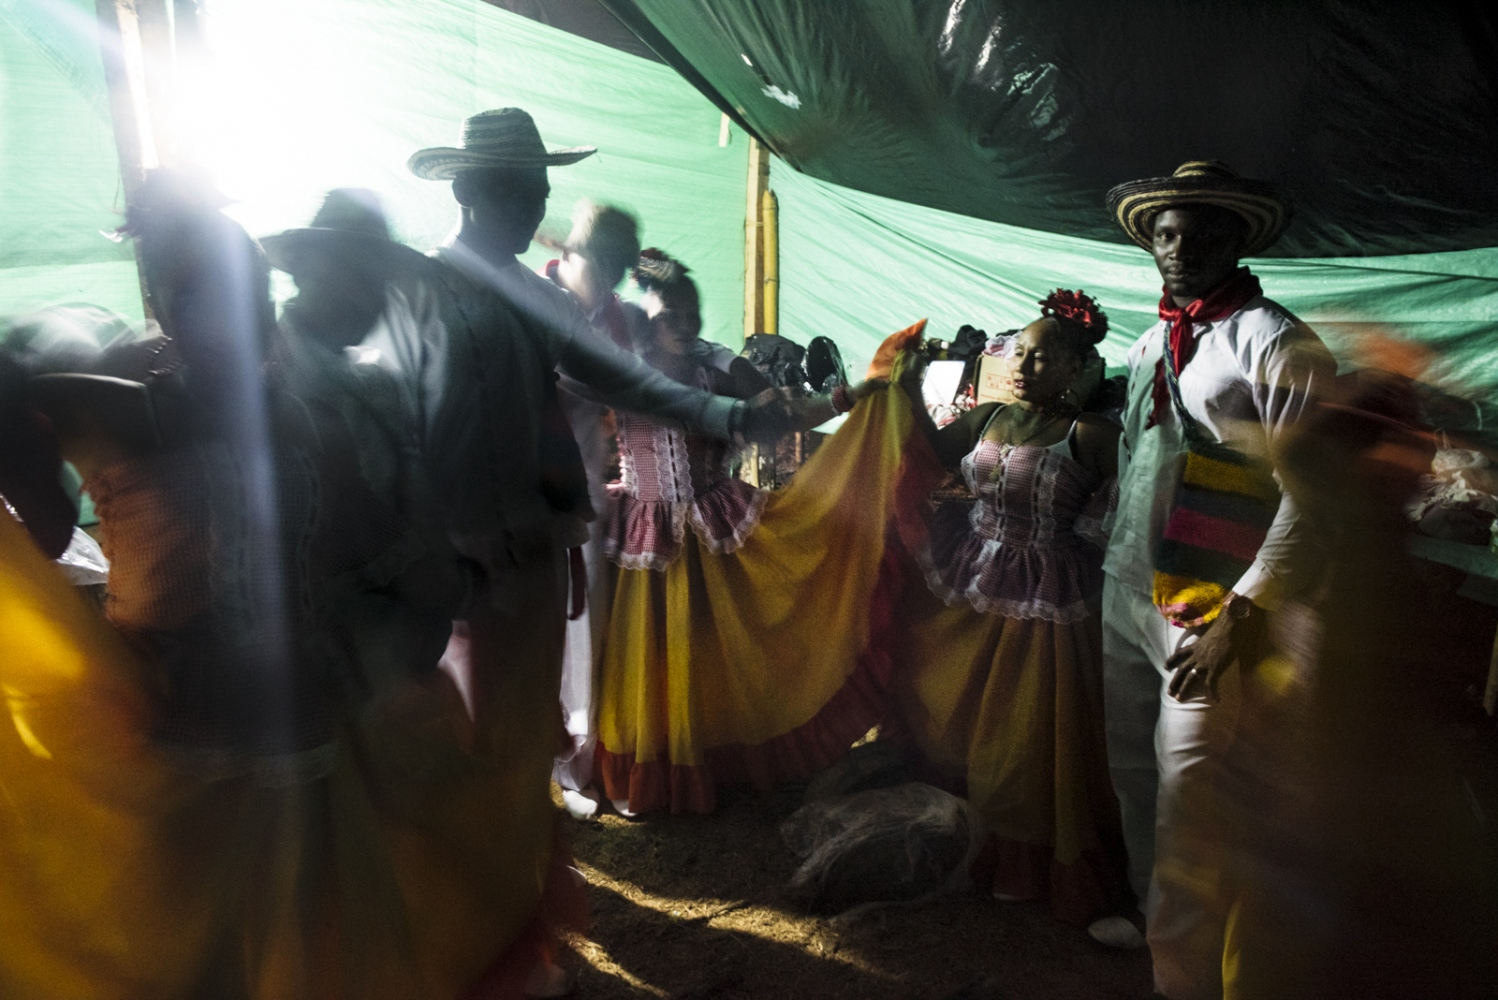 FARC members dressed in traditional dresses, rehearse before going on stage and dancing for the communities of Bojayà.